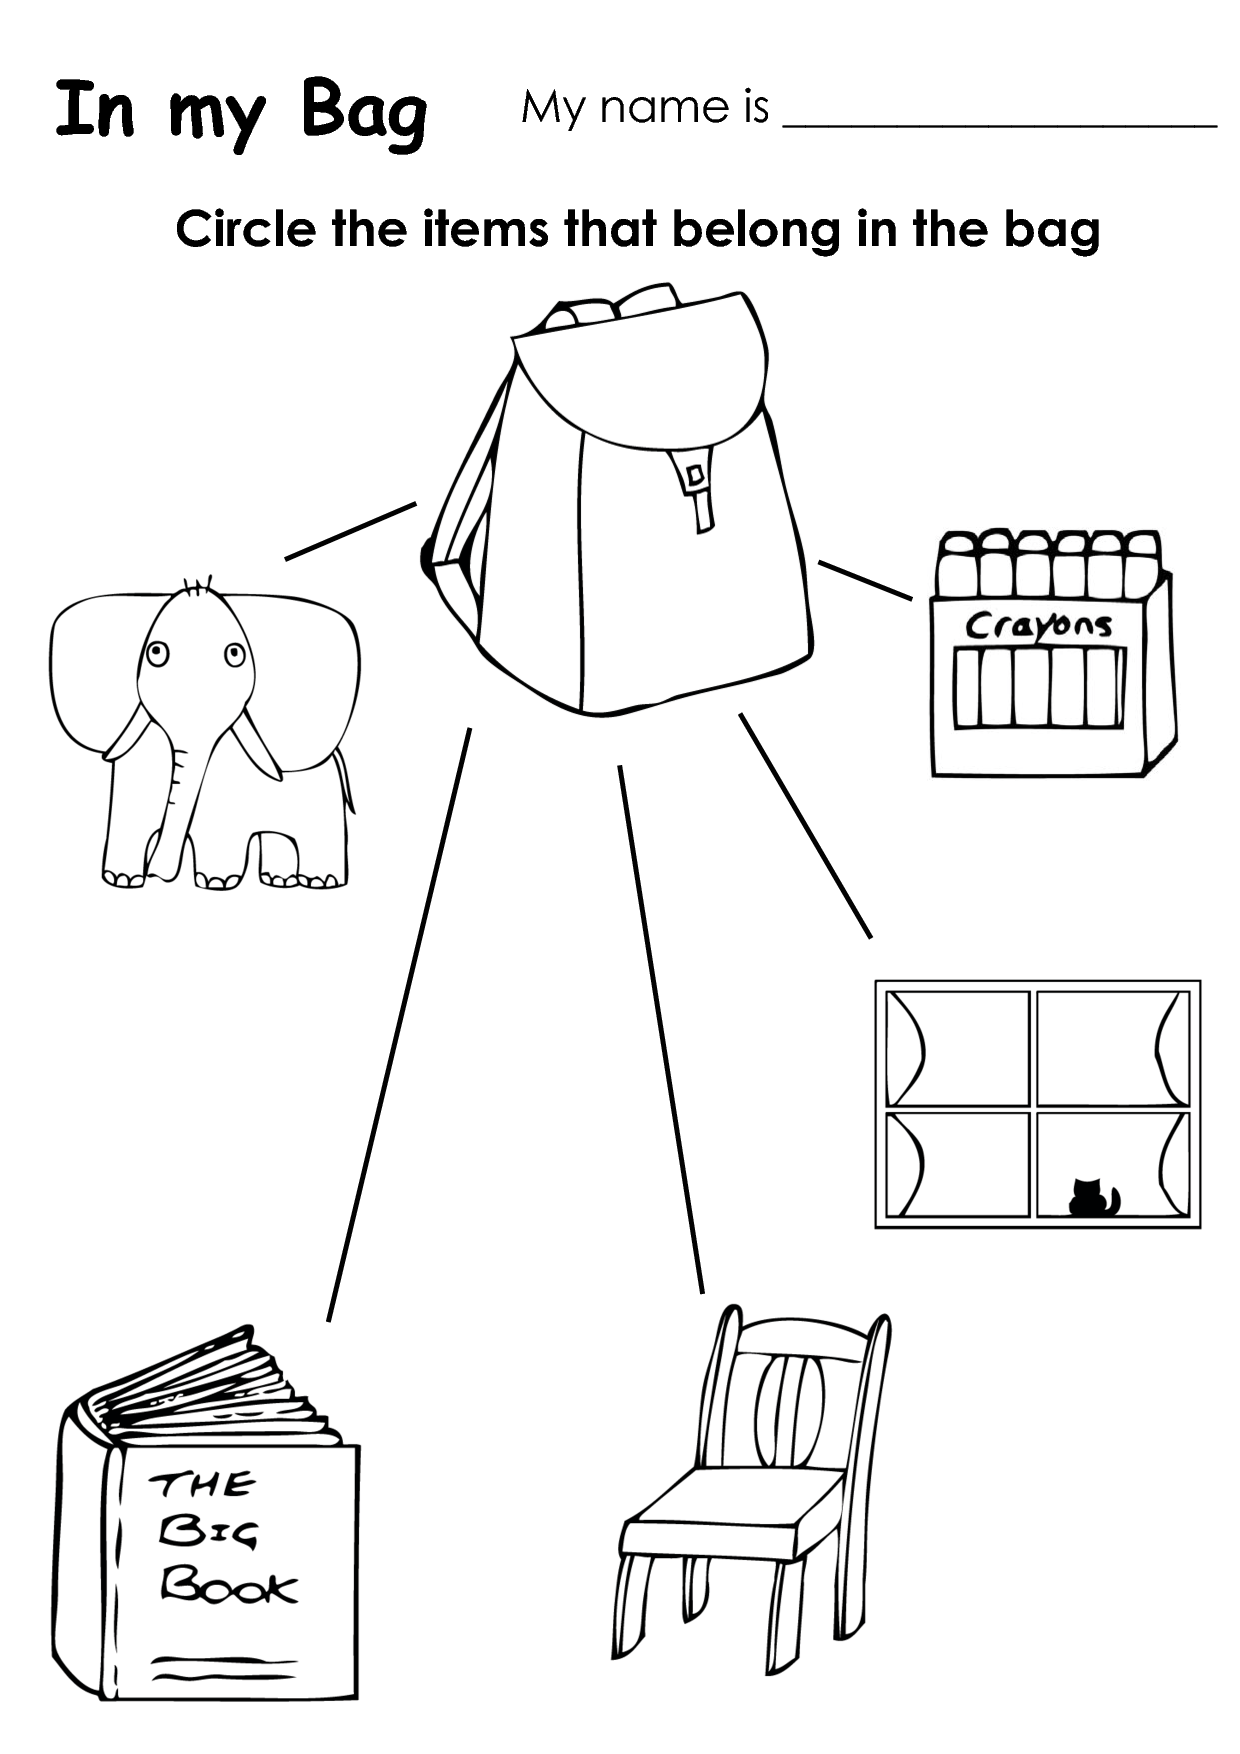 Kindergarten Coloring Pages And Worksheets Coloring Rocks Kindergarten Coloring Pages Kindergarten Colors Preschool Coloring Pages